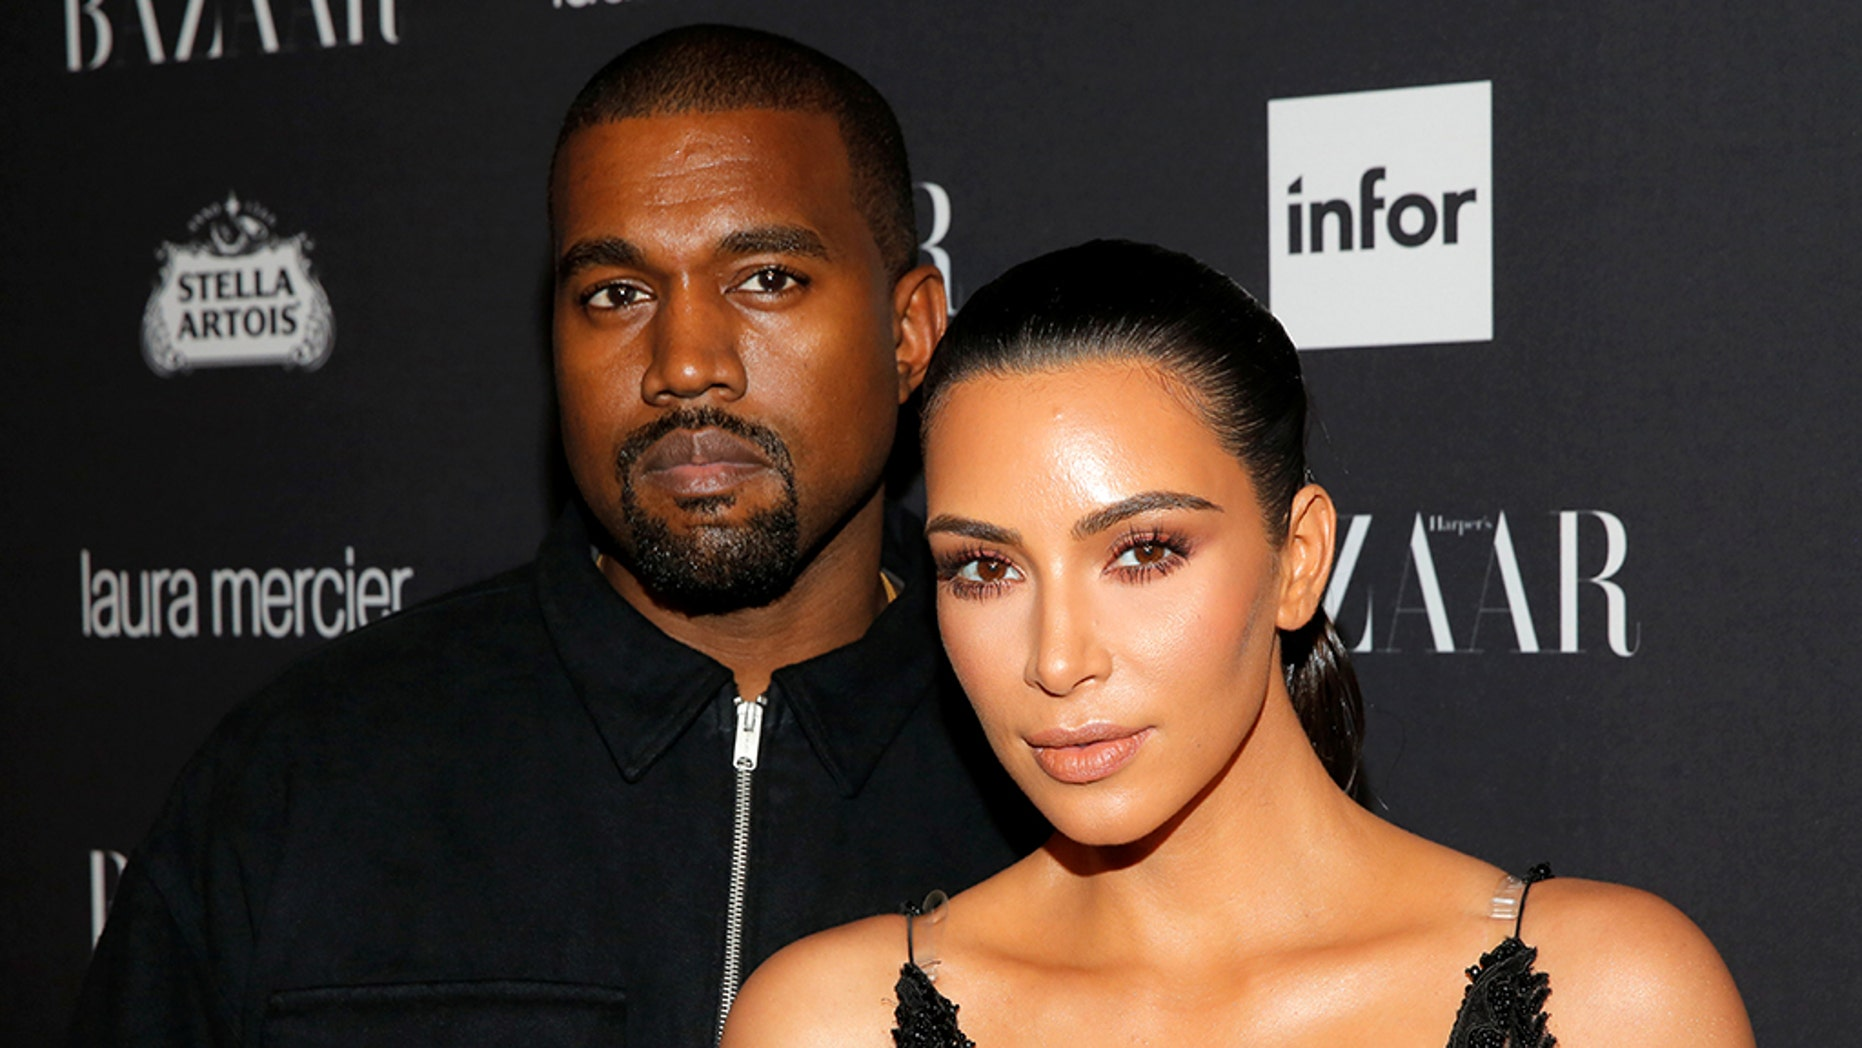 Kim Kardashian and Kanye West launched a fun idea to support a charity.